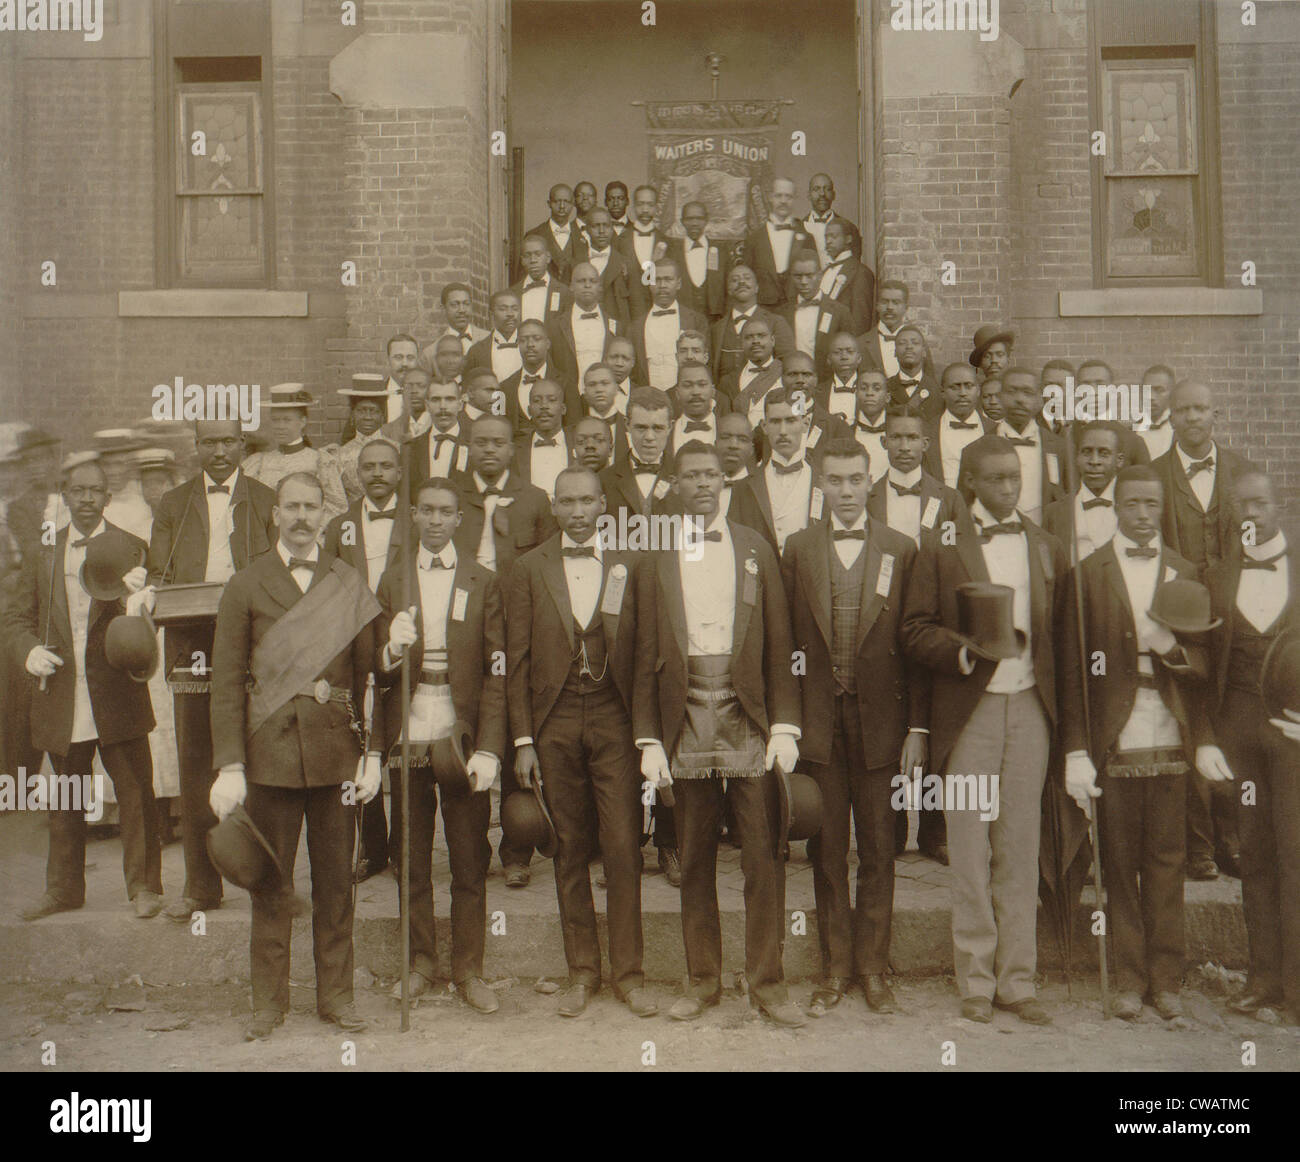 Formally dressed African American men pose with derbies and top hats, and banner labeled Waiters Union in Georgia, - Stock Image